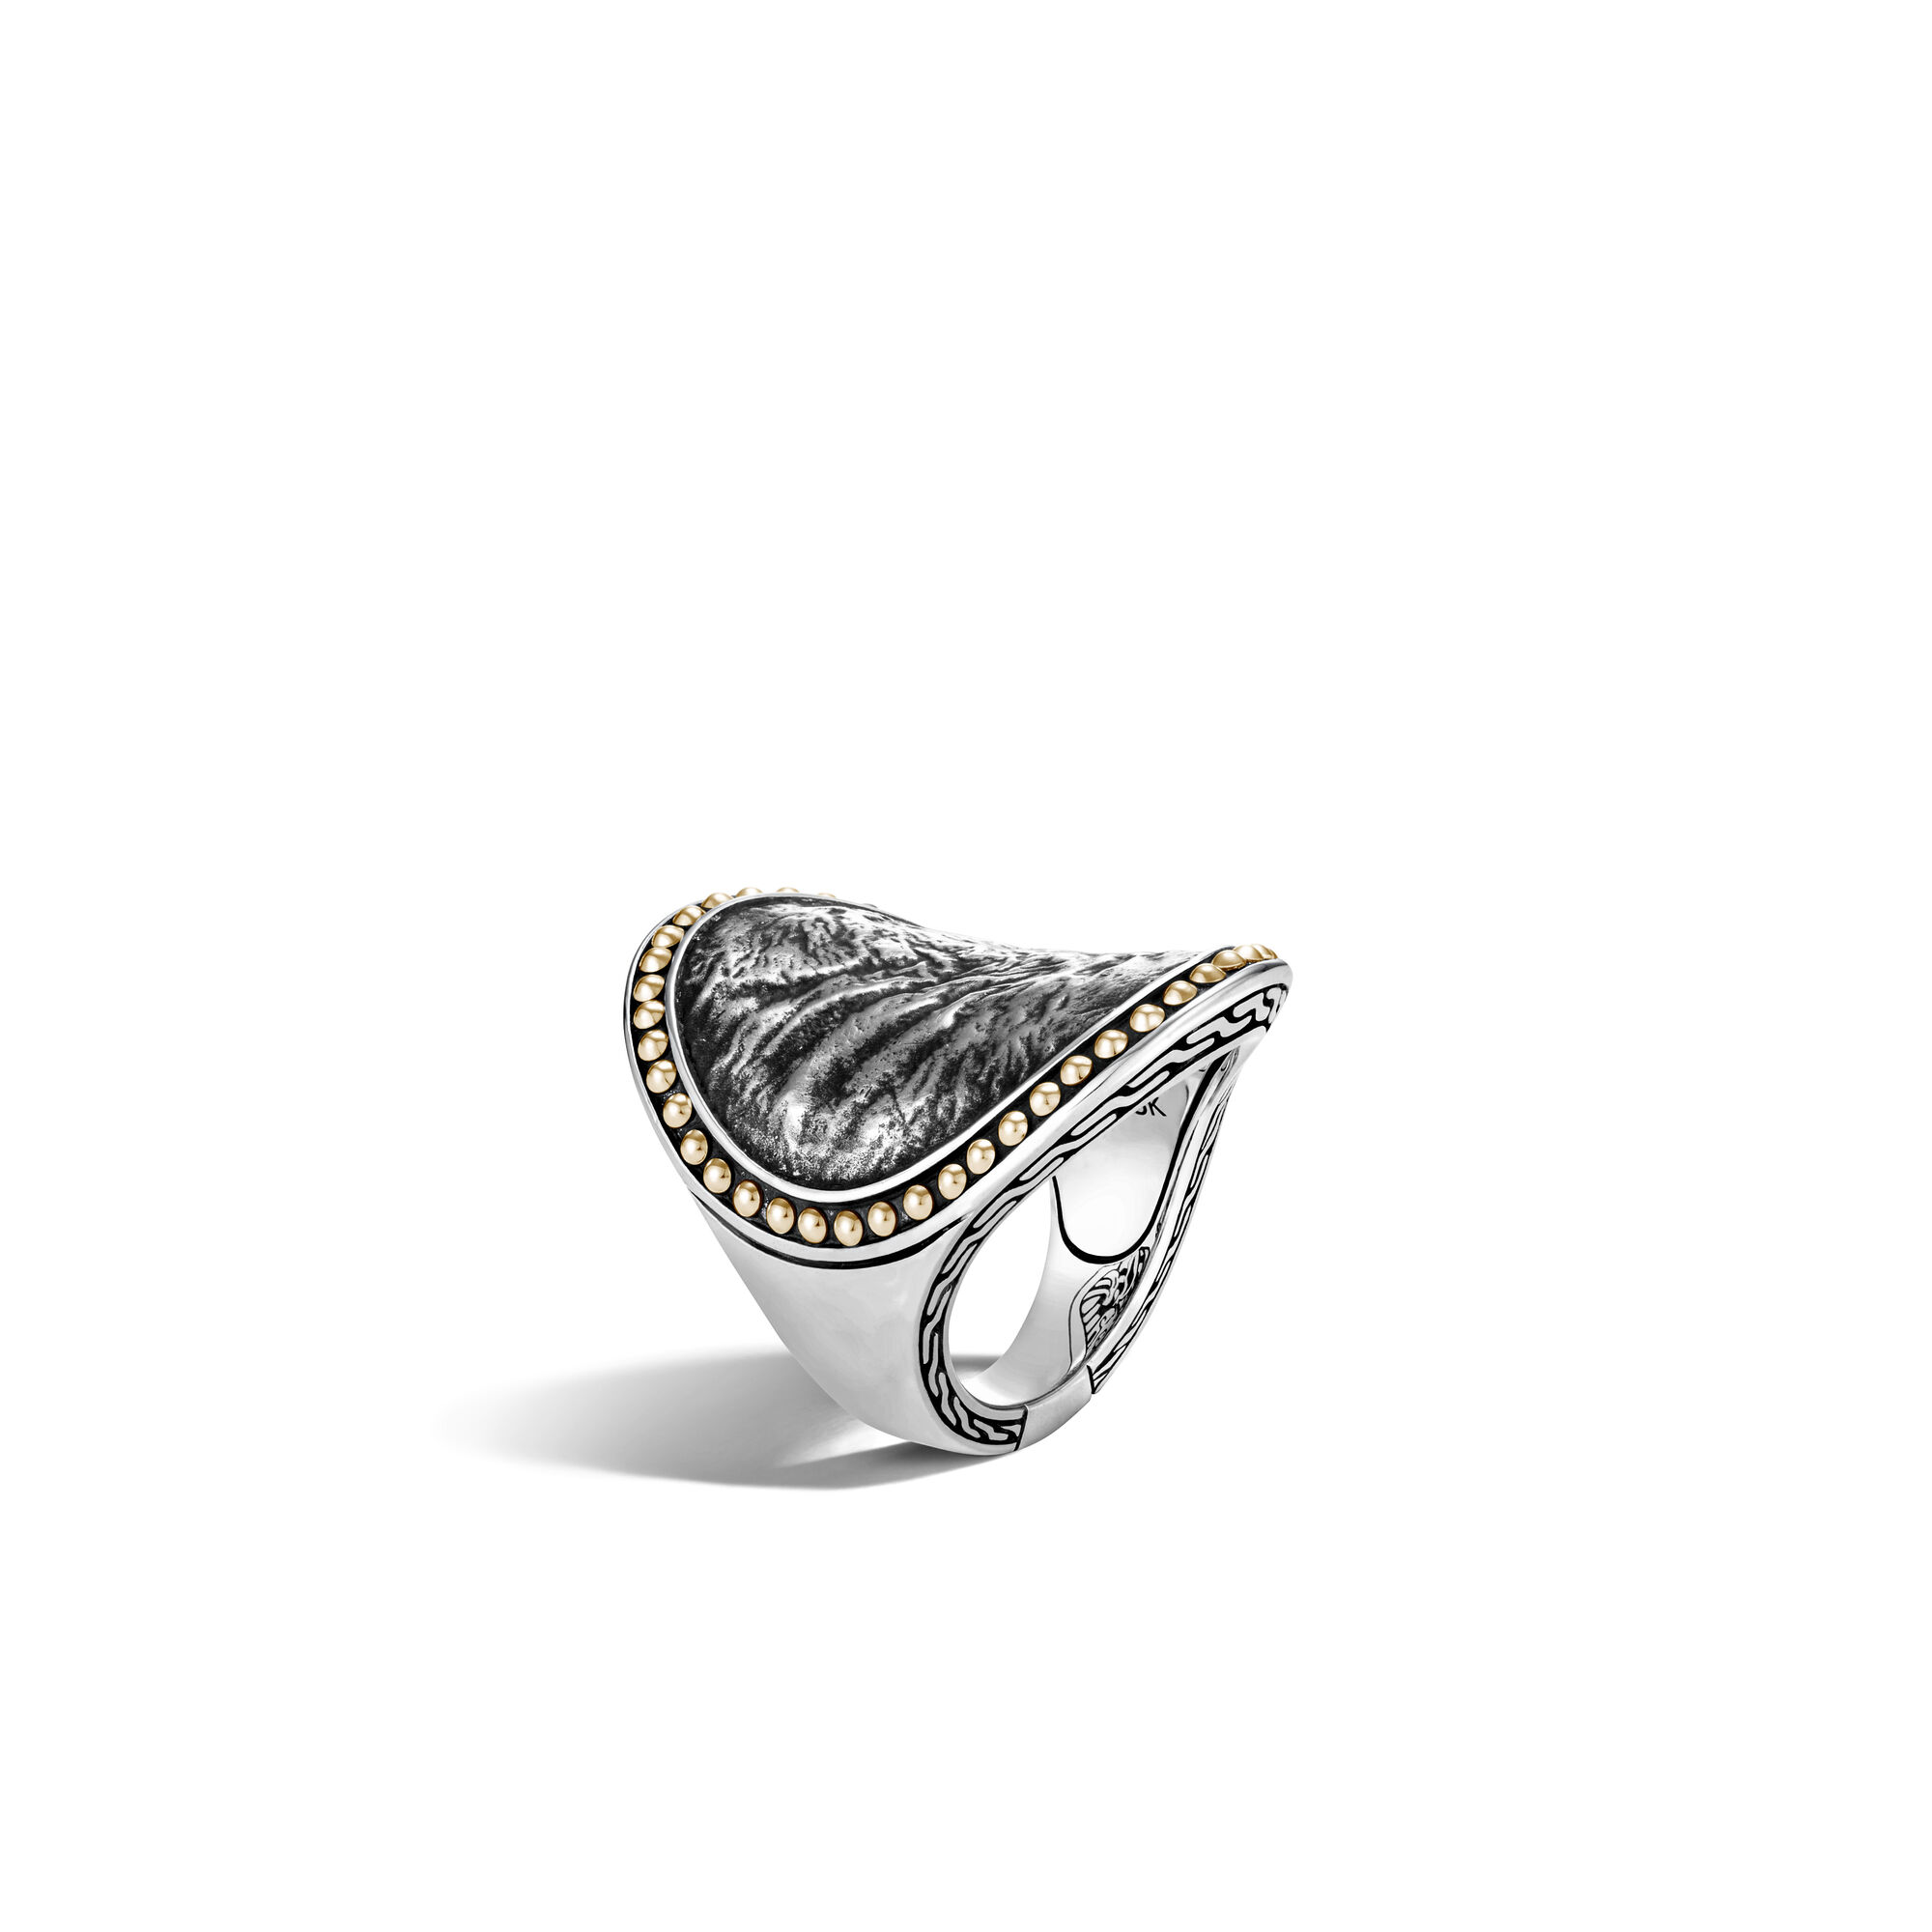 Reticulated Saddle Ring , , large